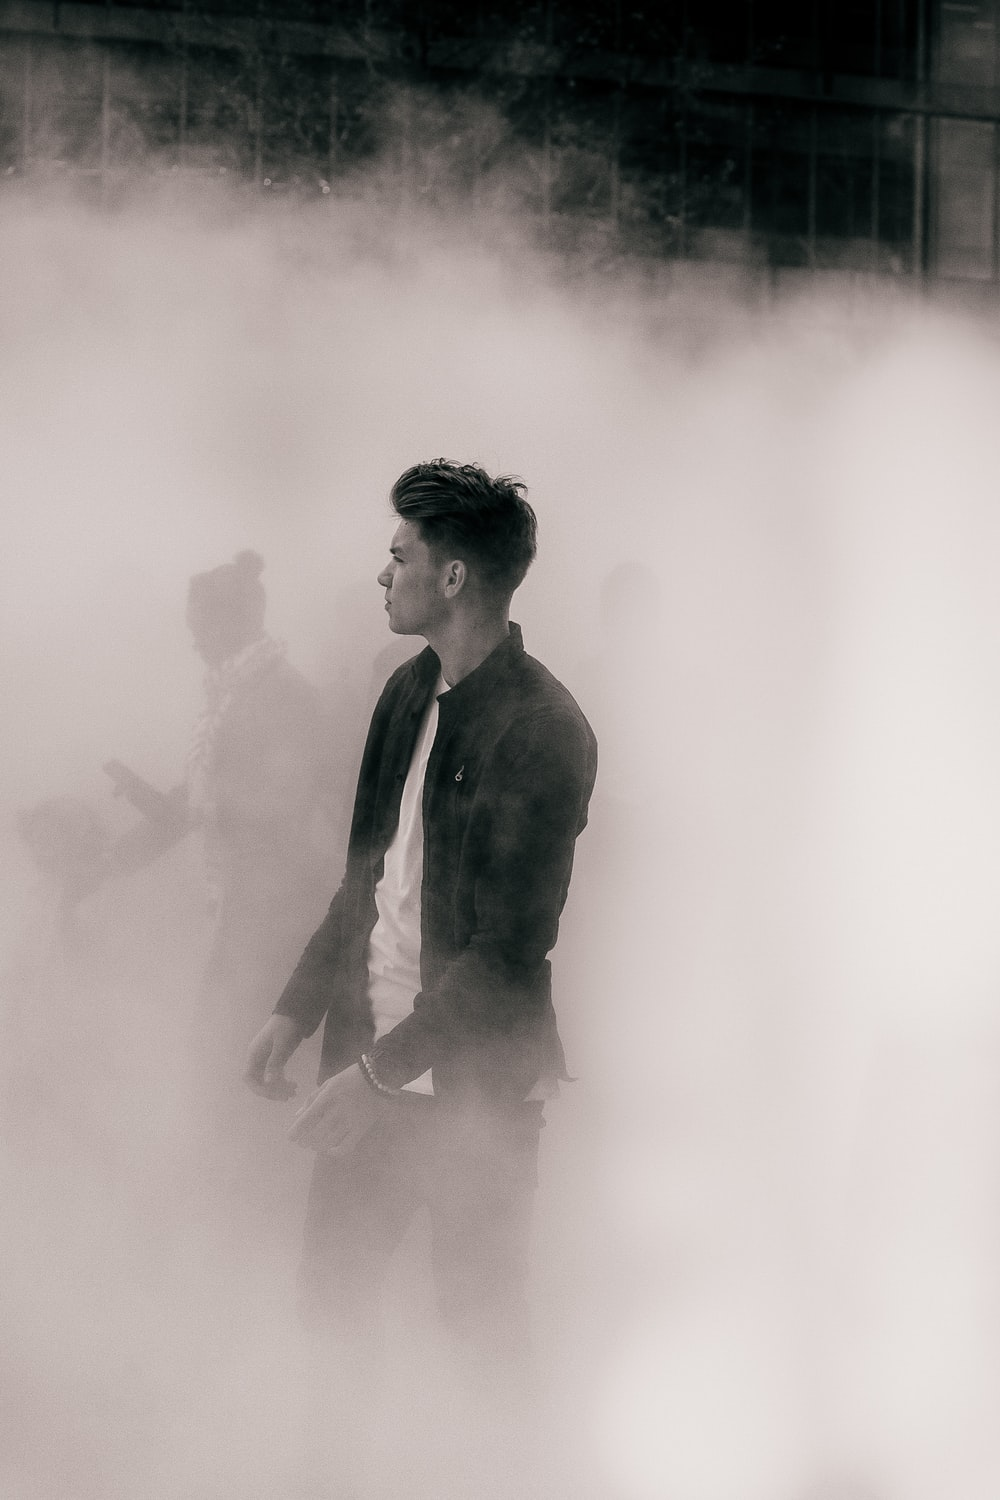 Fashionable man walks out of the fog away from the crowd